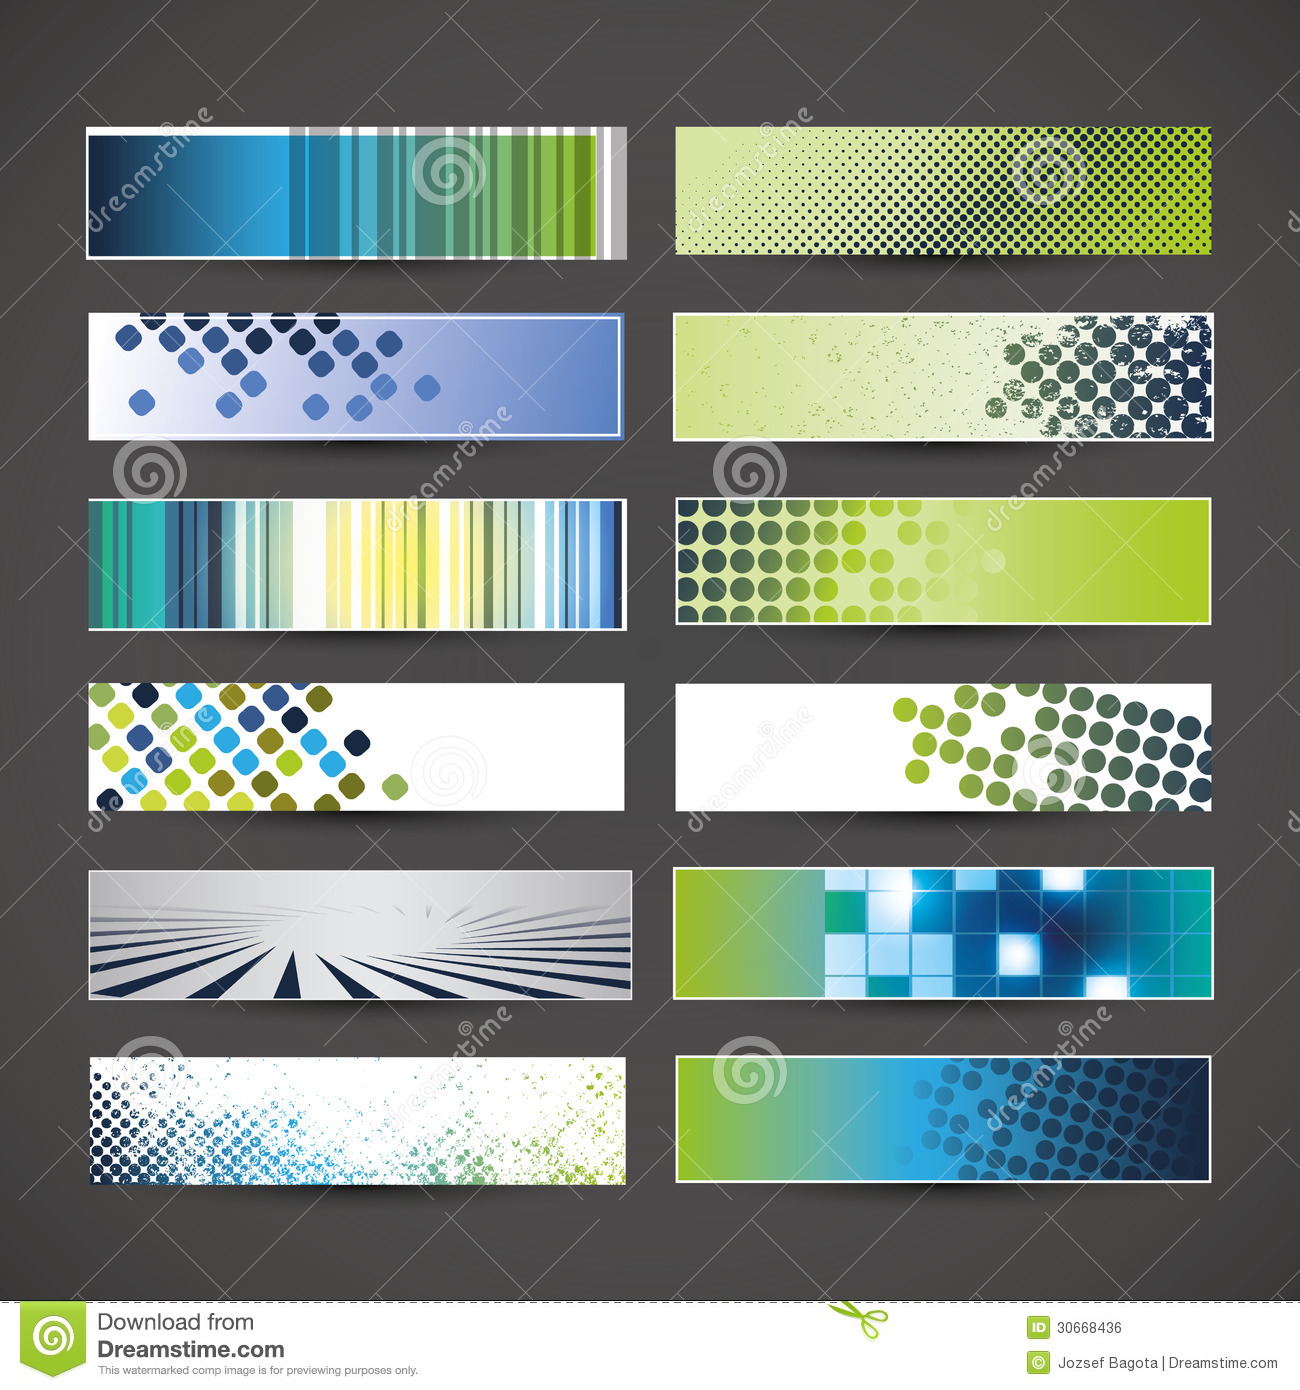 twelve colorful abstract header or banner designs in freely scalable